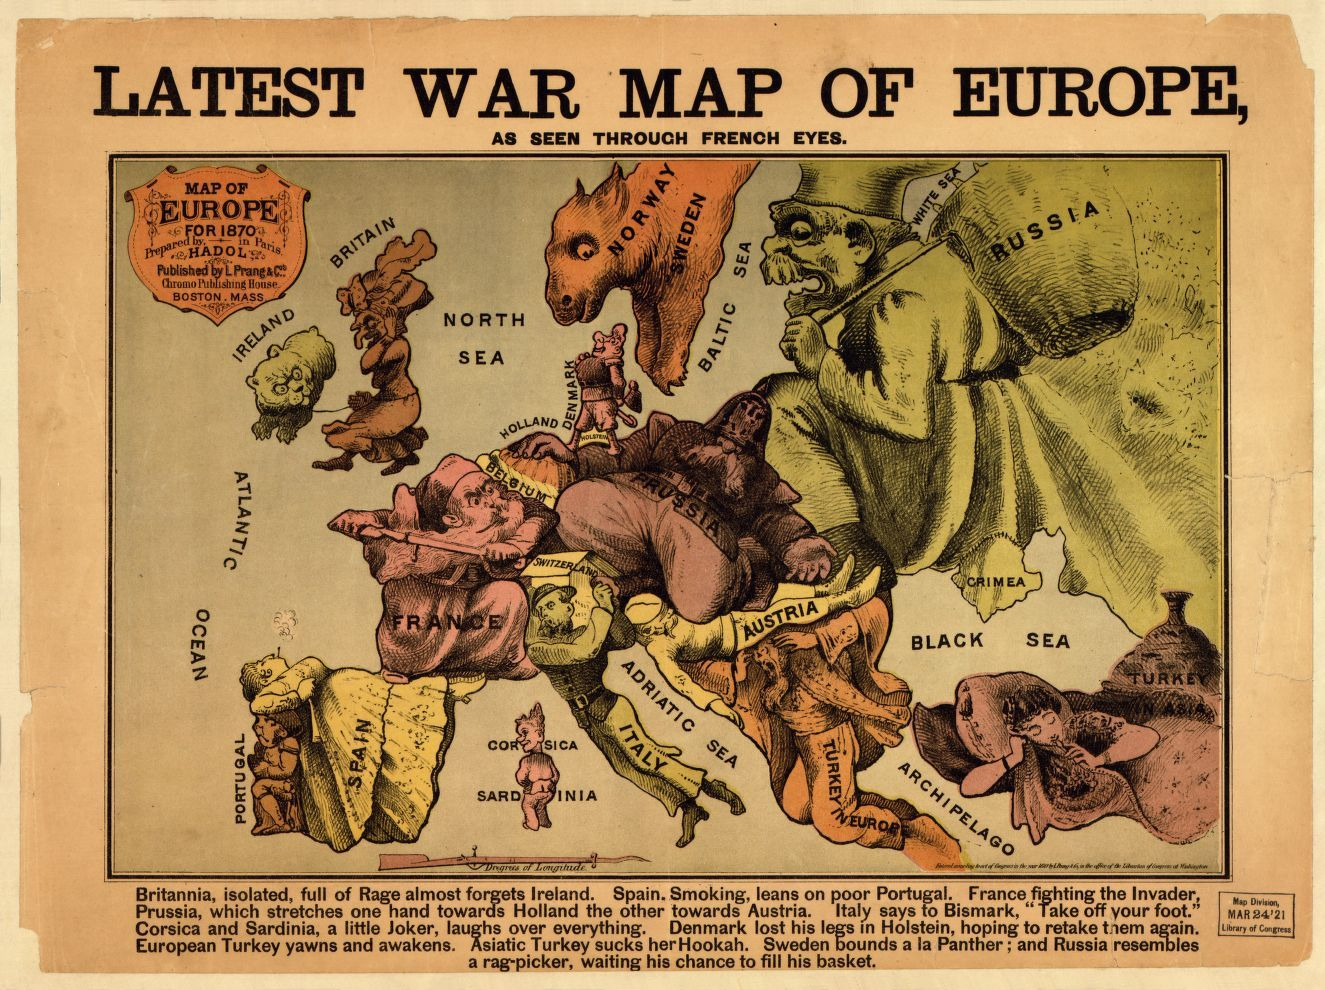 """""""Entered according to act of Congress in the year 1870 by L. Prang & Co., in the office of the Librarian of Congress of Washington."""" In lower margin: Britannia, full of Rage almost forgets Ireland. Spain, smoking, leans on poor Portugal. France fighting the invader, Prussia, which stretches one hand towards Holland the other towards Austria. Italy says to Bismark, """"Take off your foot."""" Corsica and Sardinia, a little joker, laughs over everything. Denmark lost his legs in Holstein, hoping to…"""